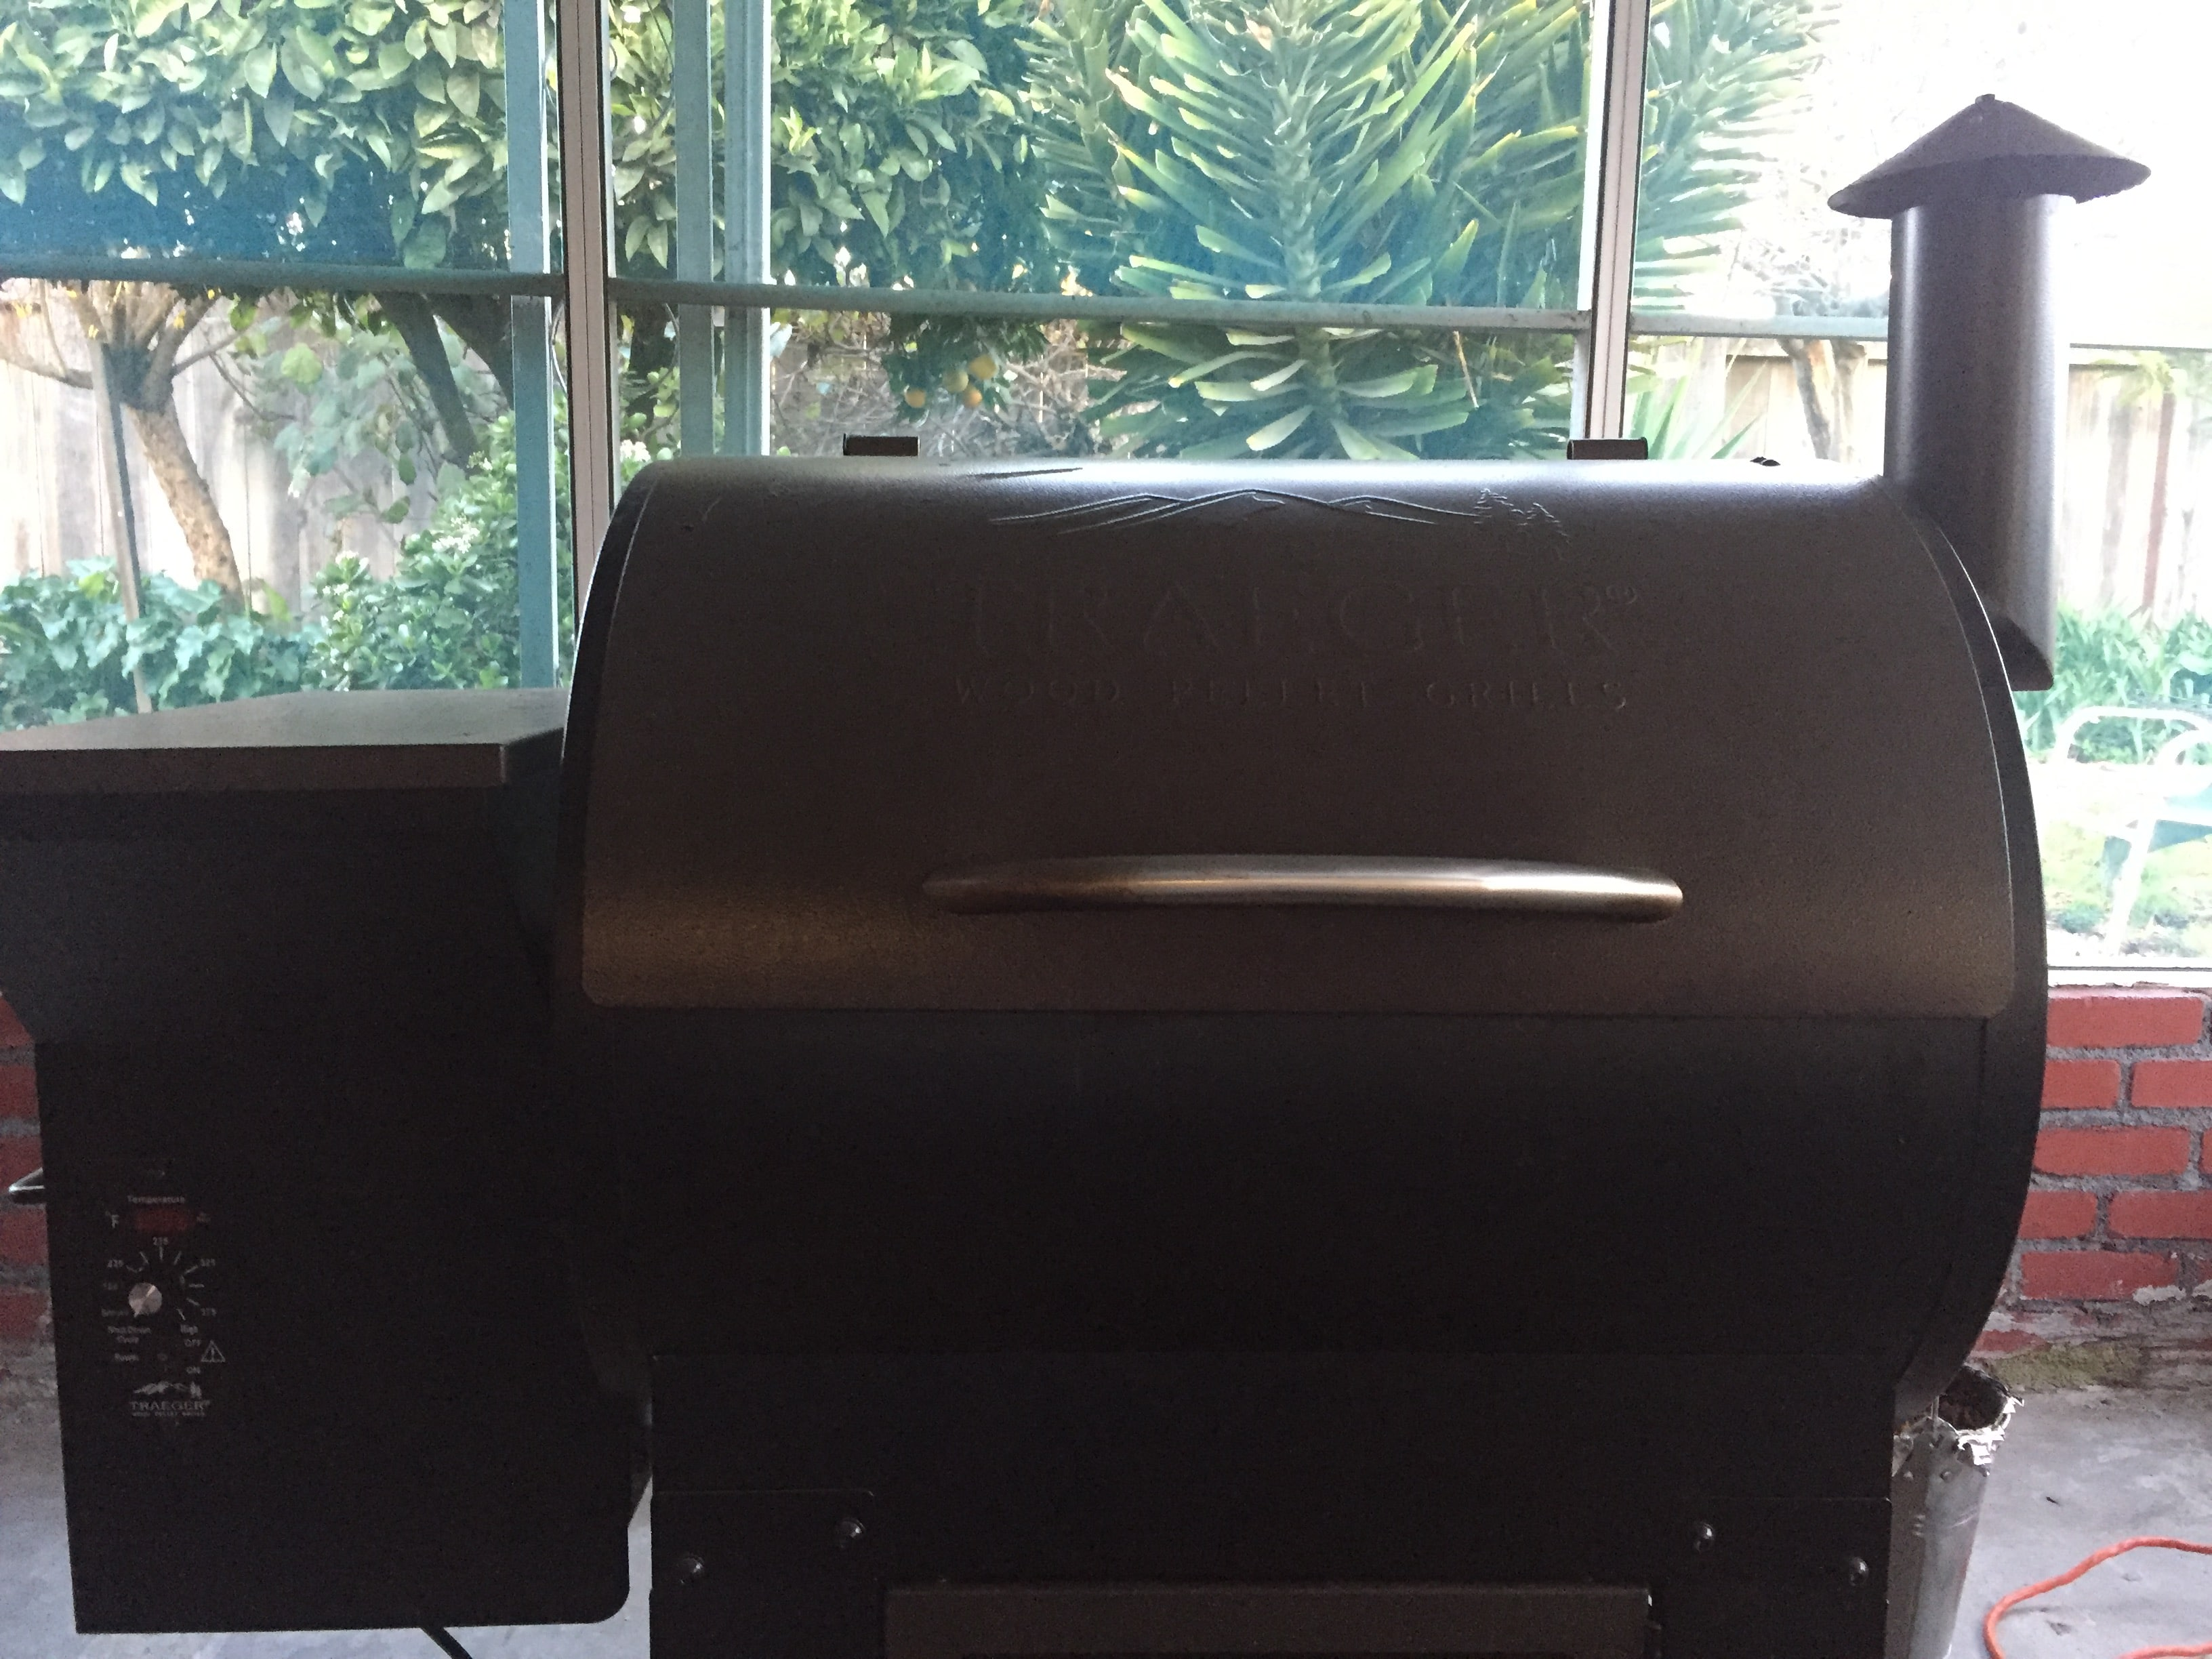 What is a Pellet Grill_Traeger Wood Pellet Grill